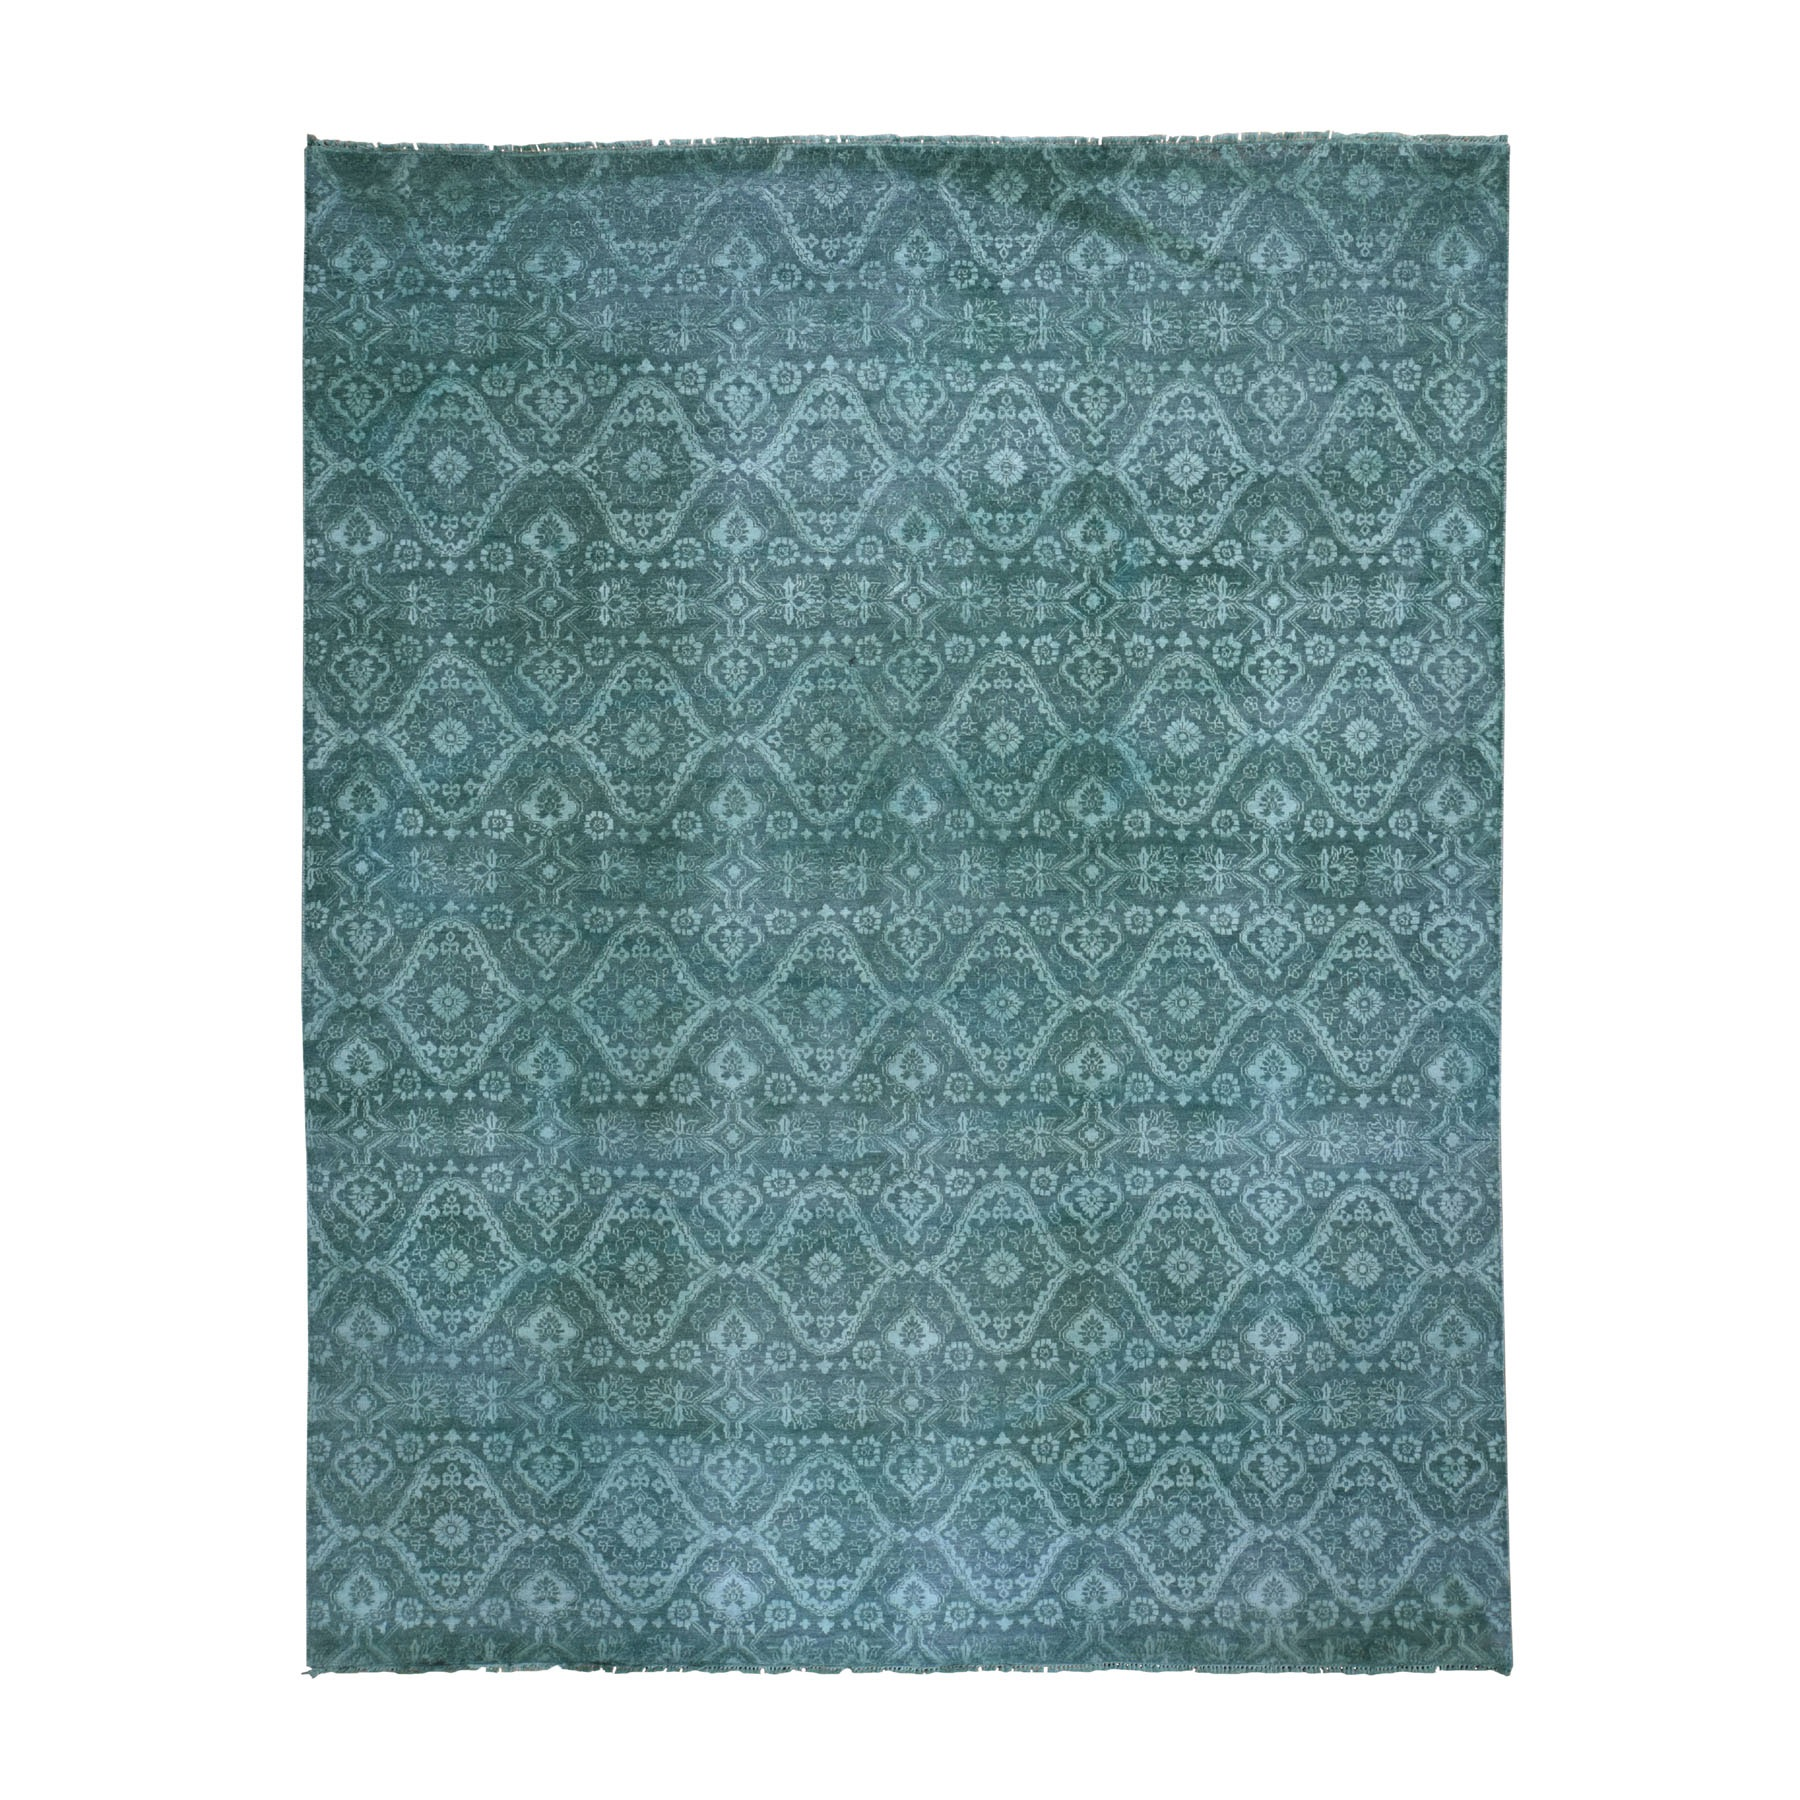 "8'X10'1"" Teal Green Overdyed Wool And Silk Hand Knotted Oriental Rug moad8c97"